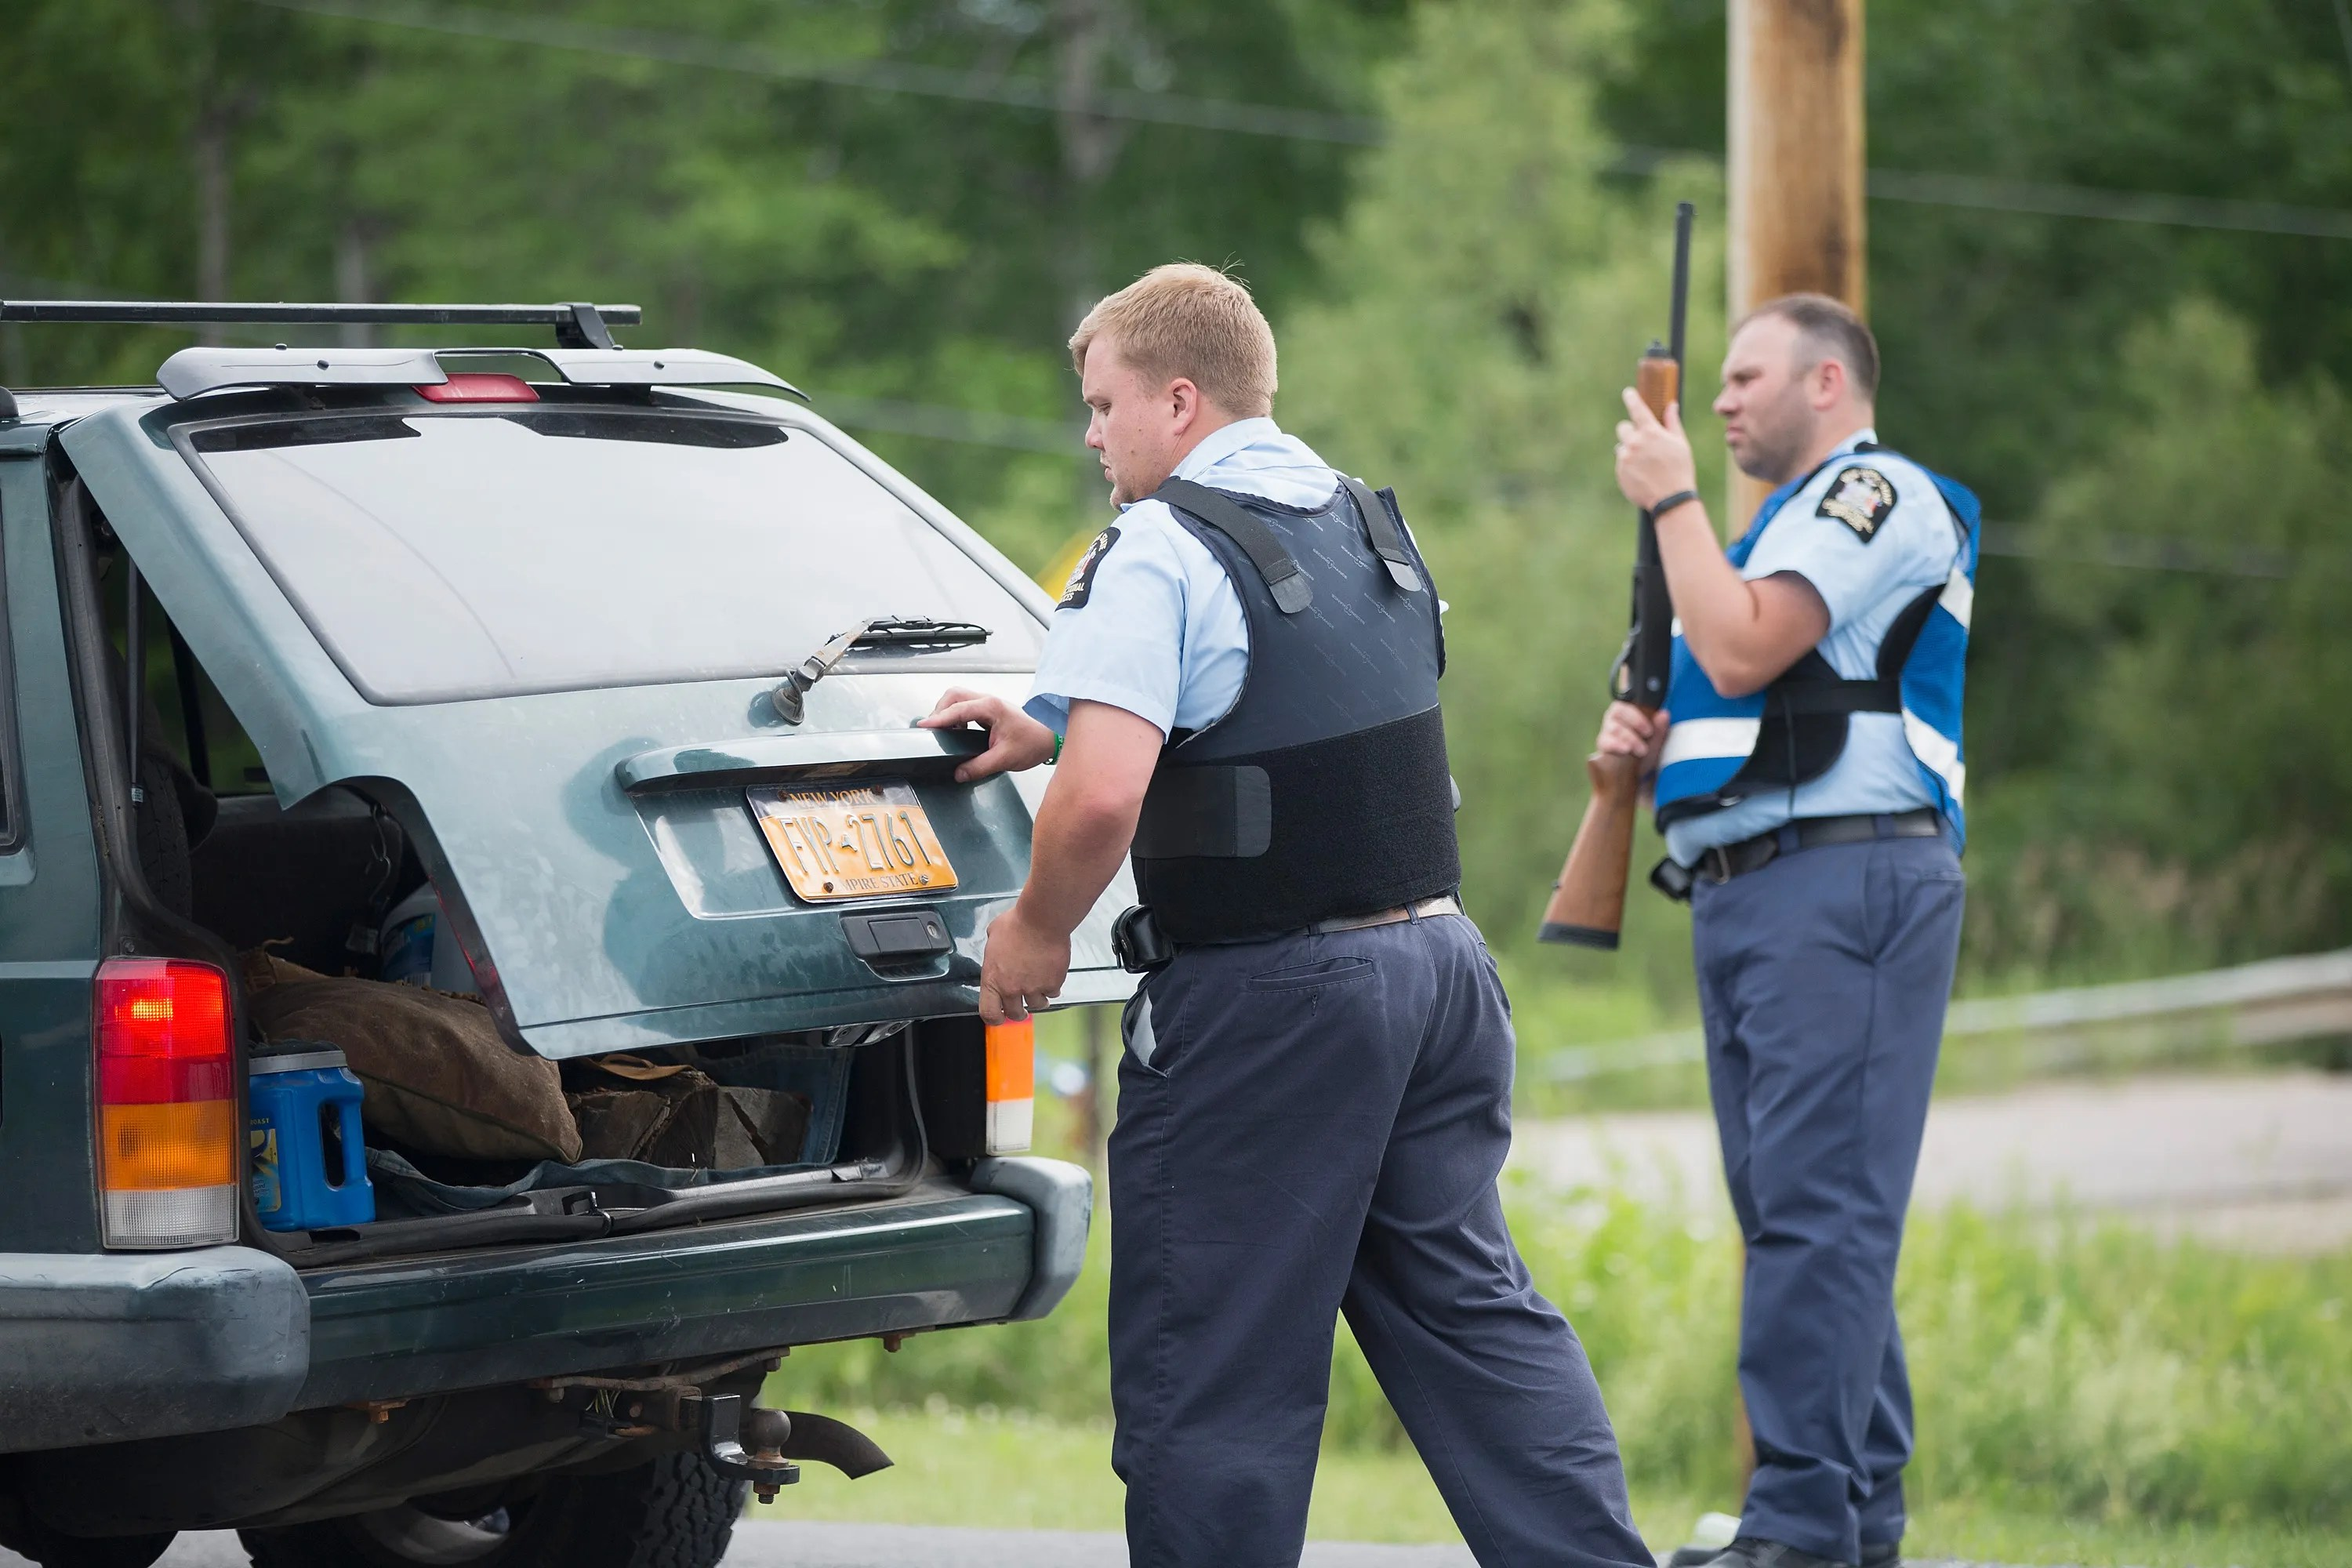 Second NY prison escapee caught near Canadian border - new york state correction officer